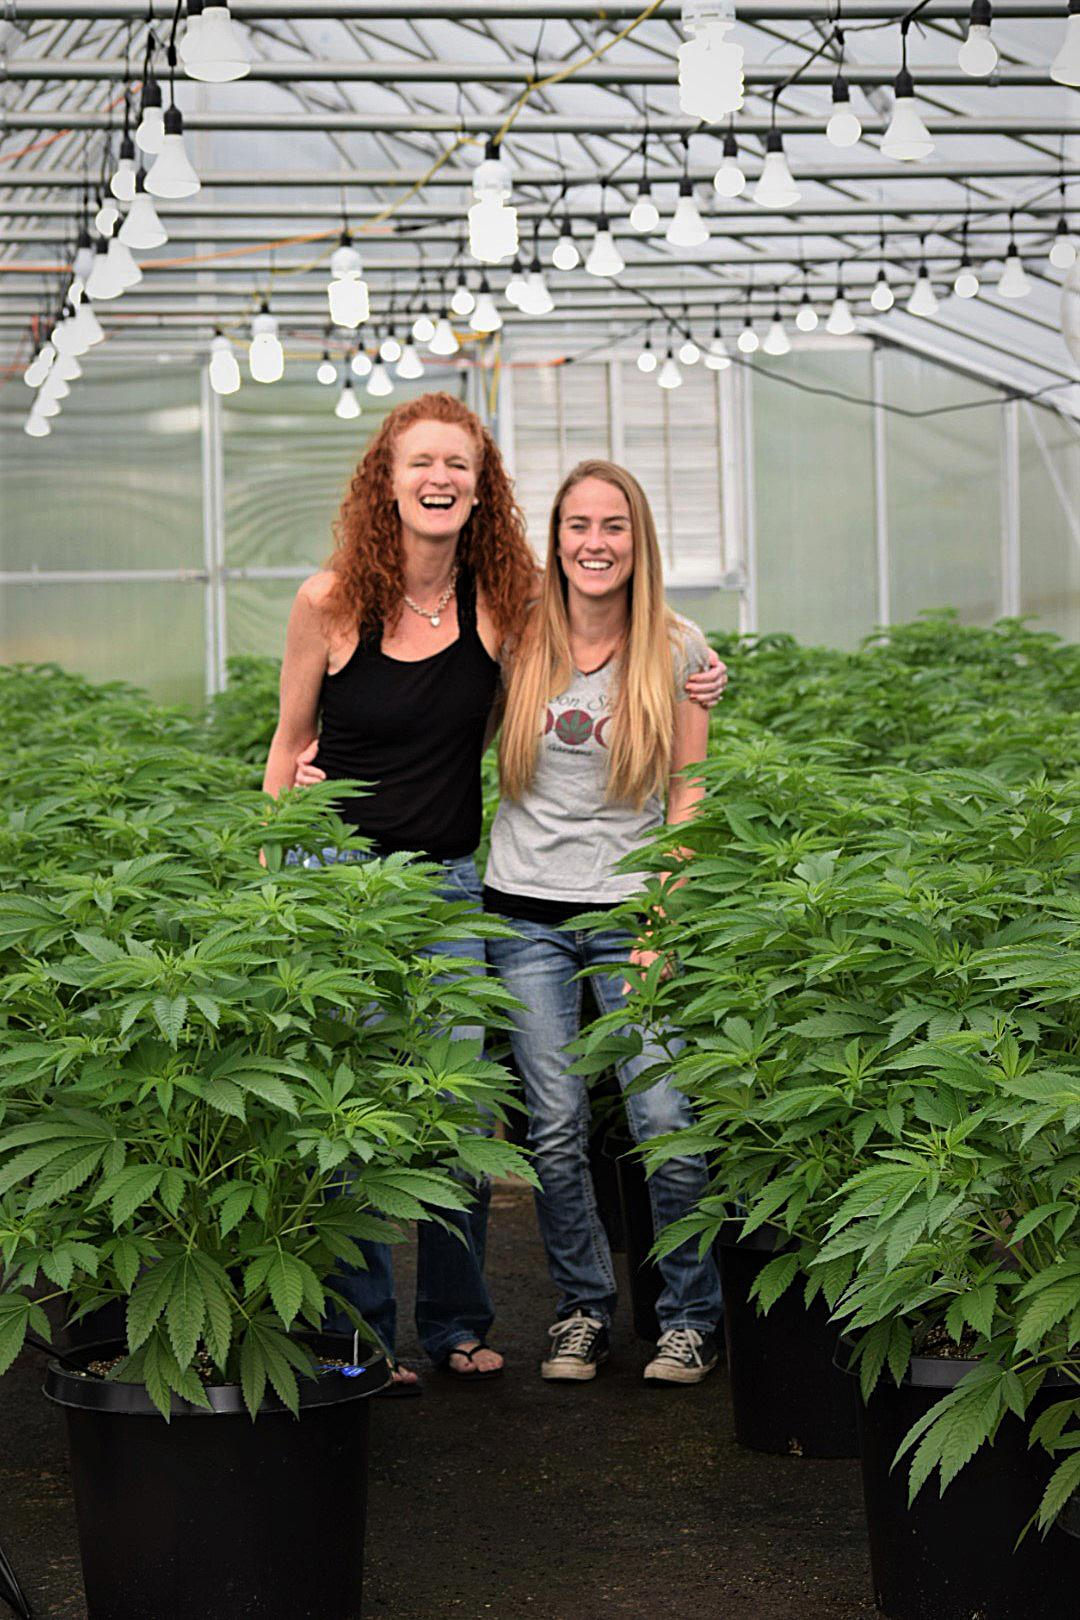 Valerie Montague, left, and Kristine Miller own Moon Shine Gardens in Josephine County. <br><p>Photo Courtesy of Moon Shine Gardens</p>